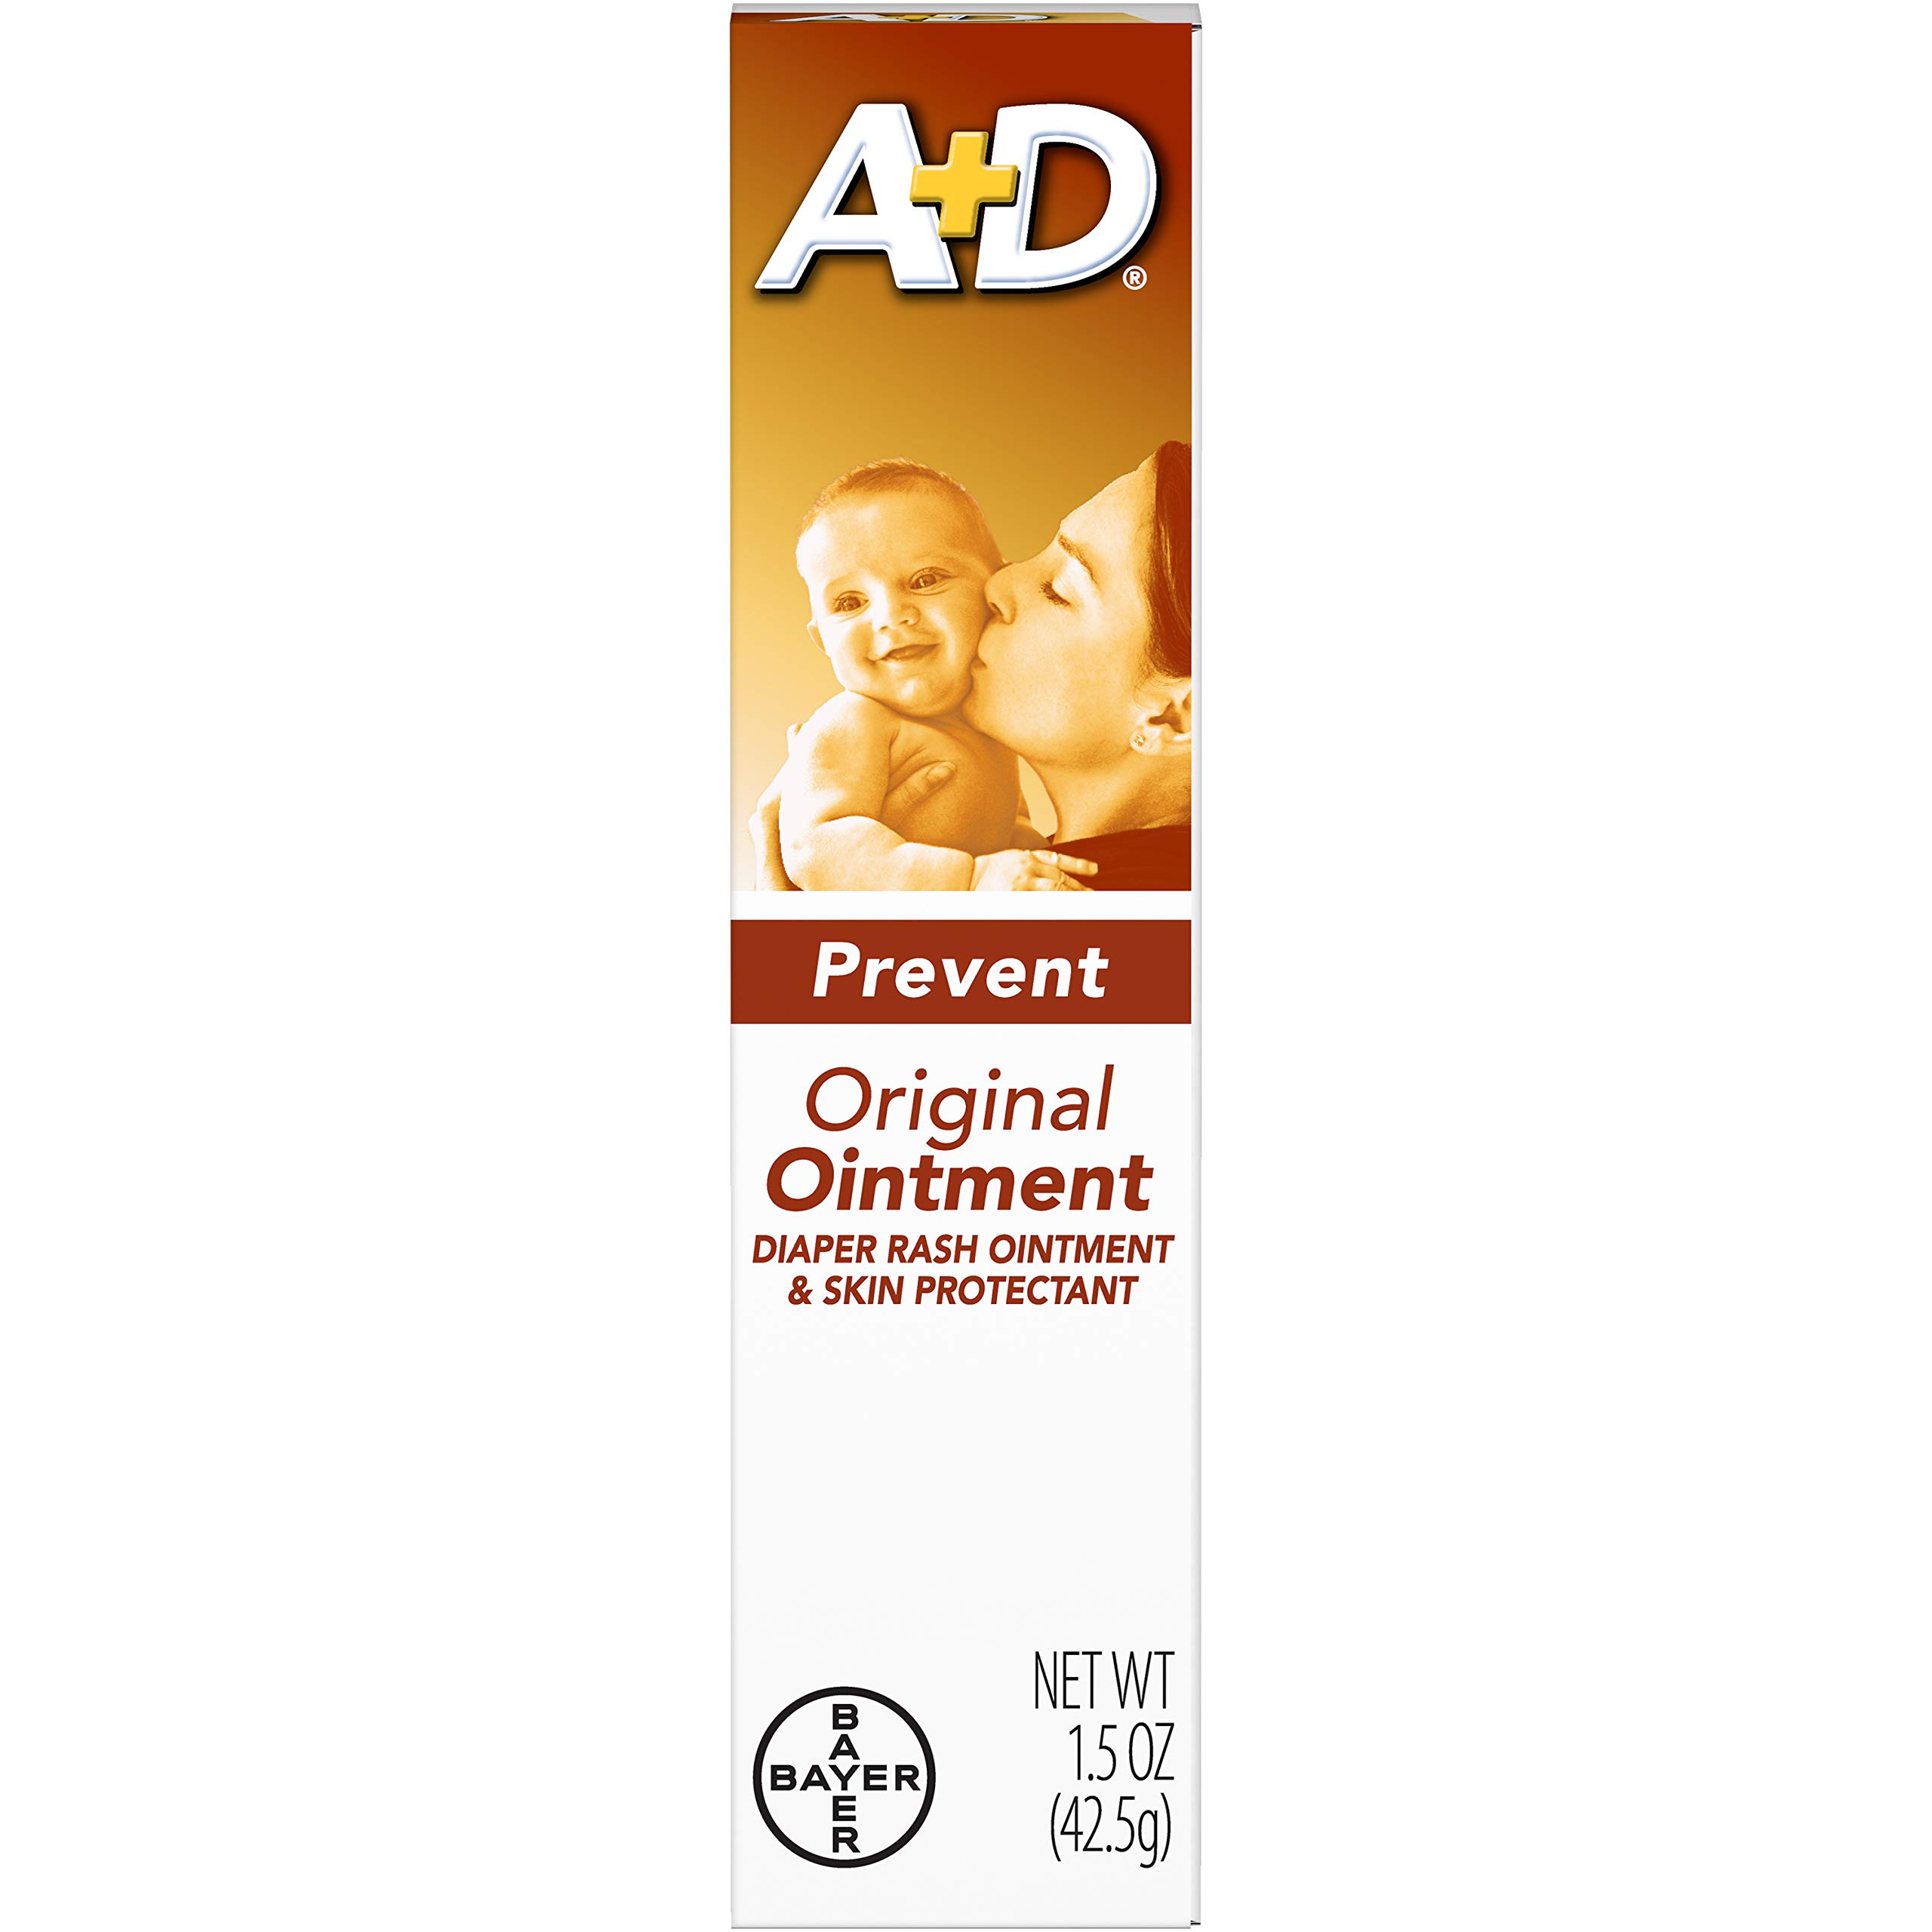 A+D Original Diaper Rash Ointment, Baby Skin Protectant With Lanolin and Petrolatum, Seals Out Wetness, Helps Prevent…